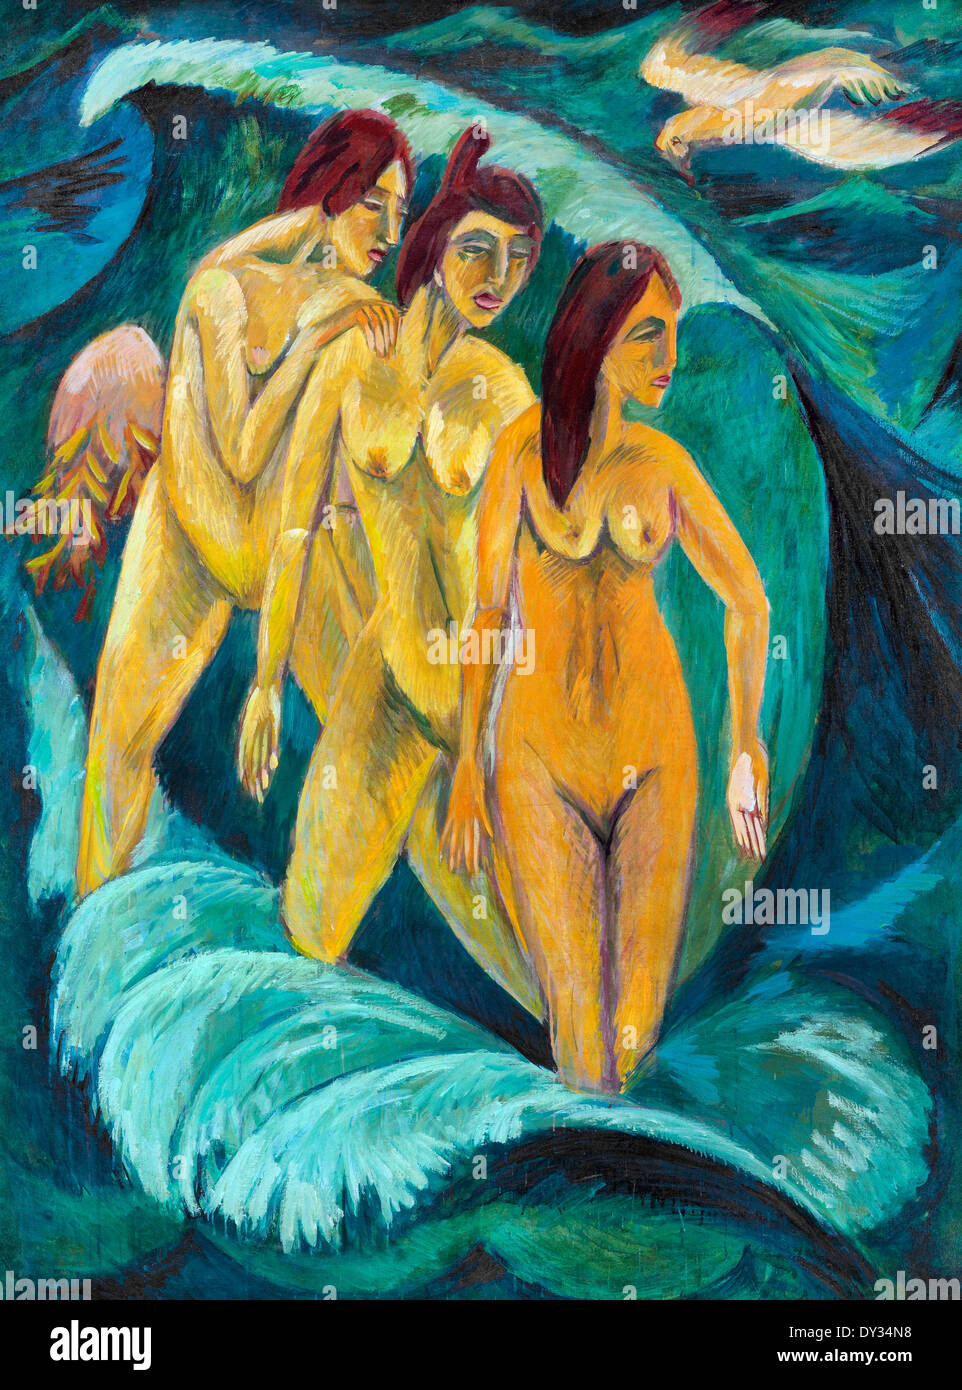 Ernst Ludwig Kirchner, Three Bathers 1910 Oil on canvas. Art Gallery of New South Wales, Sydney, Australia. - Stock Image